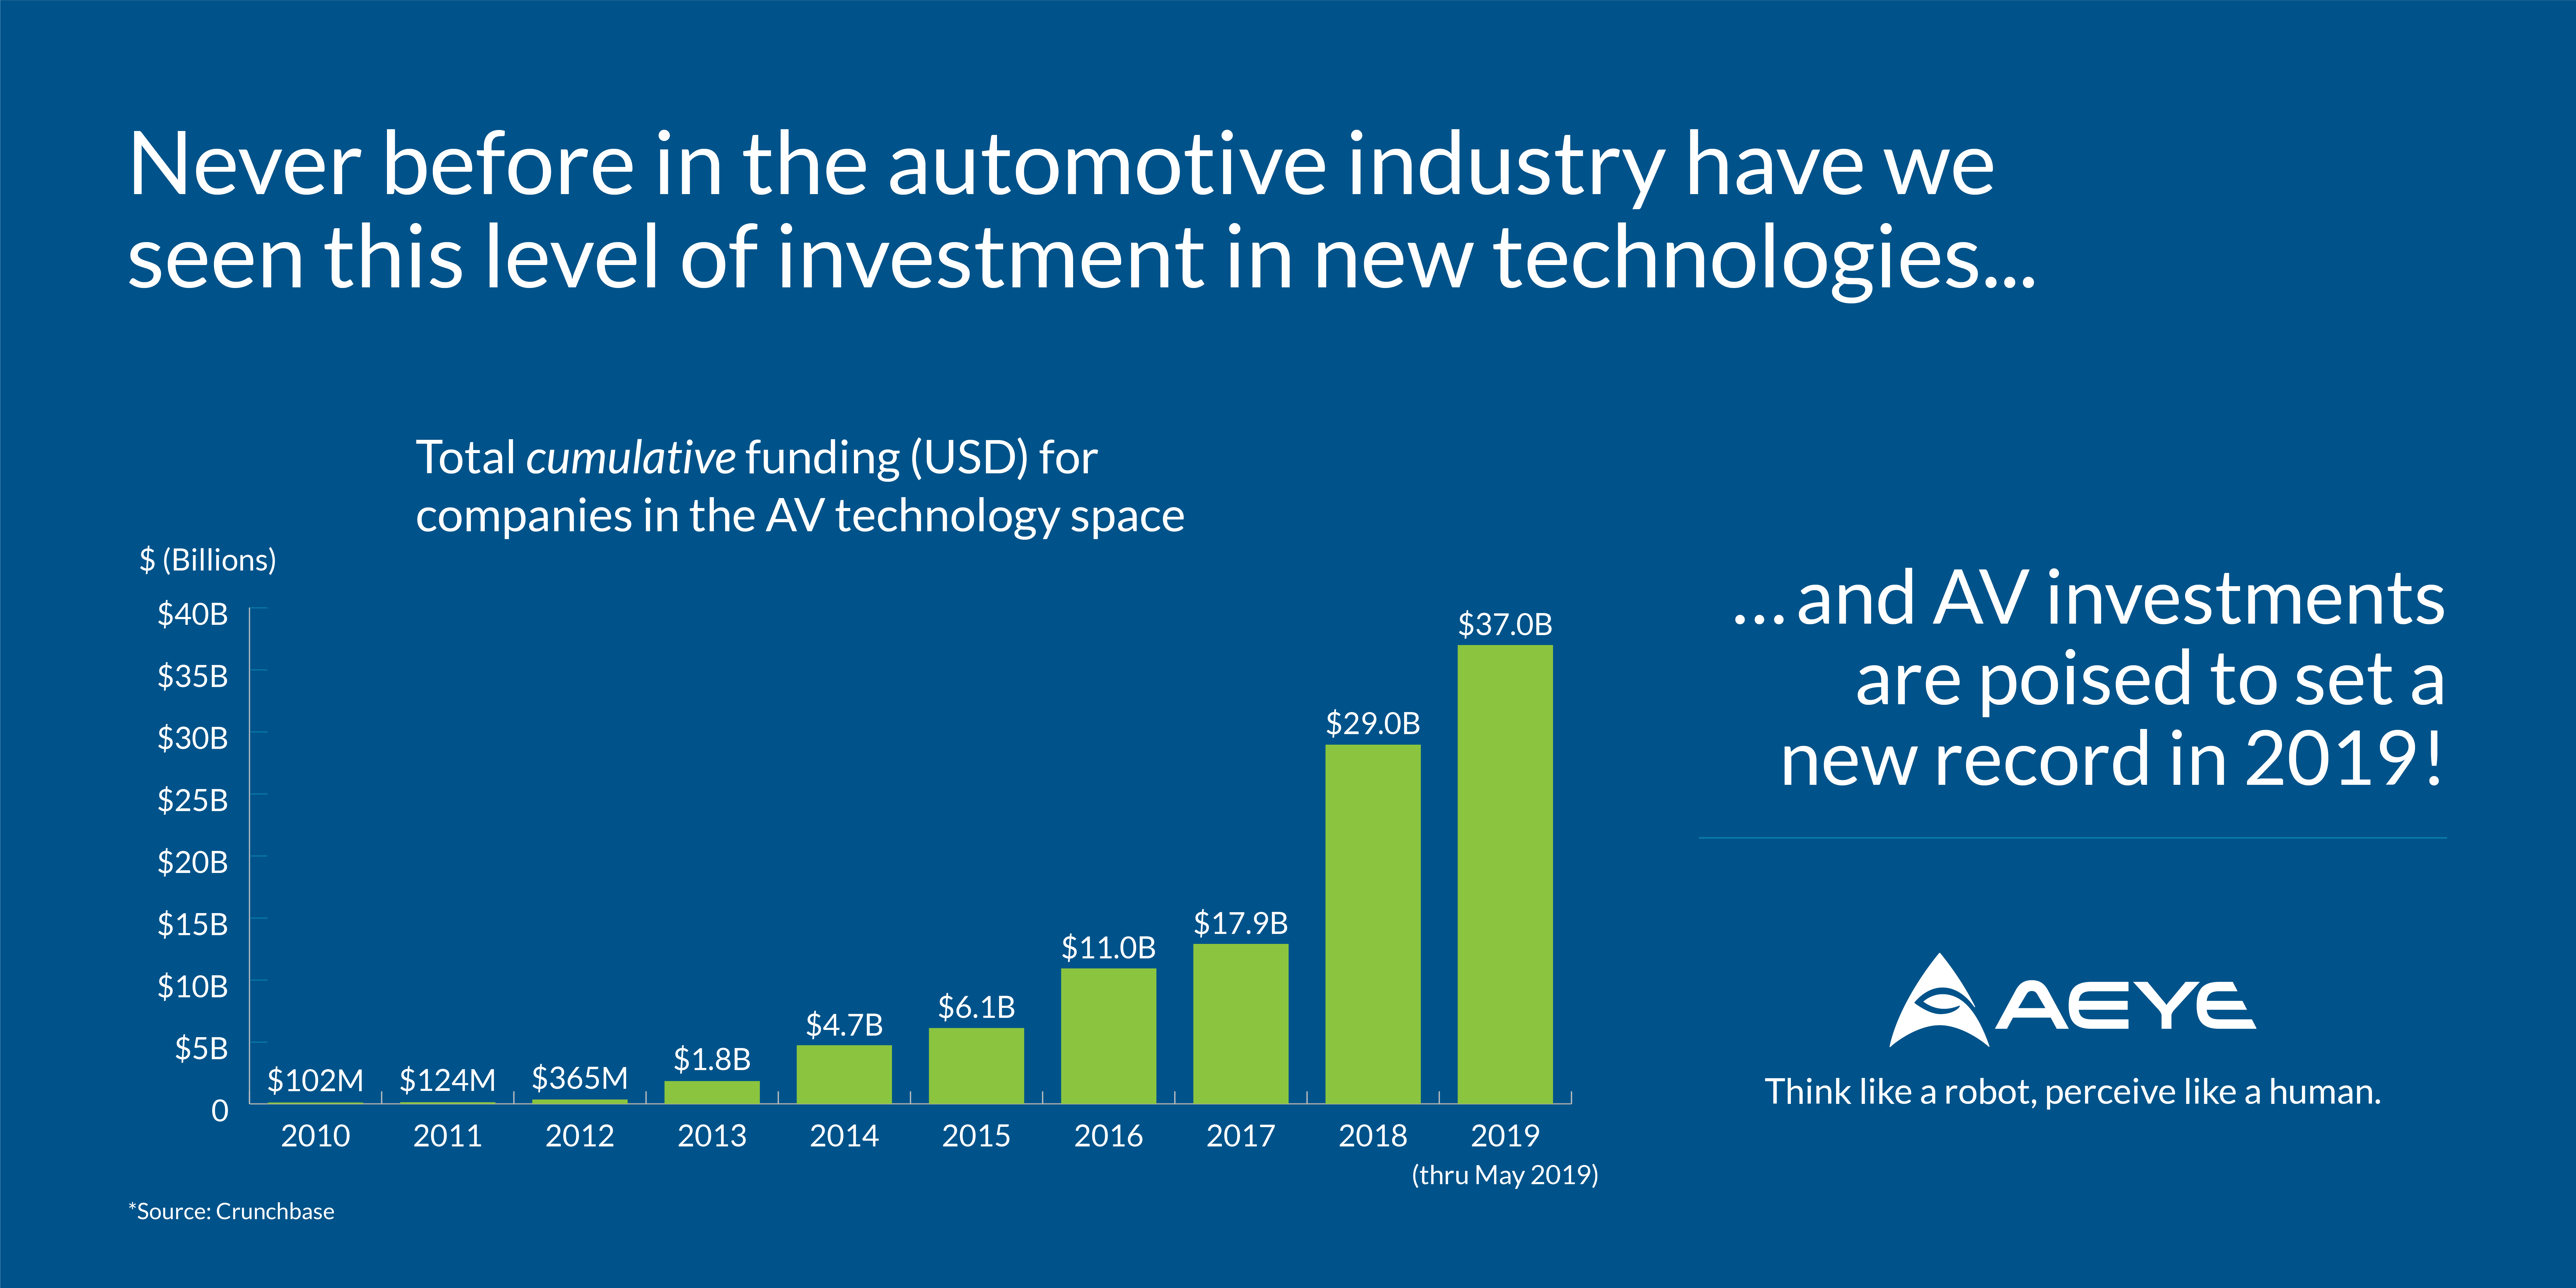 Autonomous Vehicle Investments Are Poised to Set a New Record in 2019